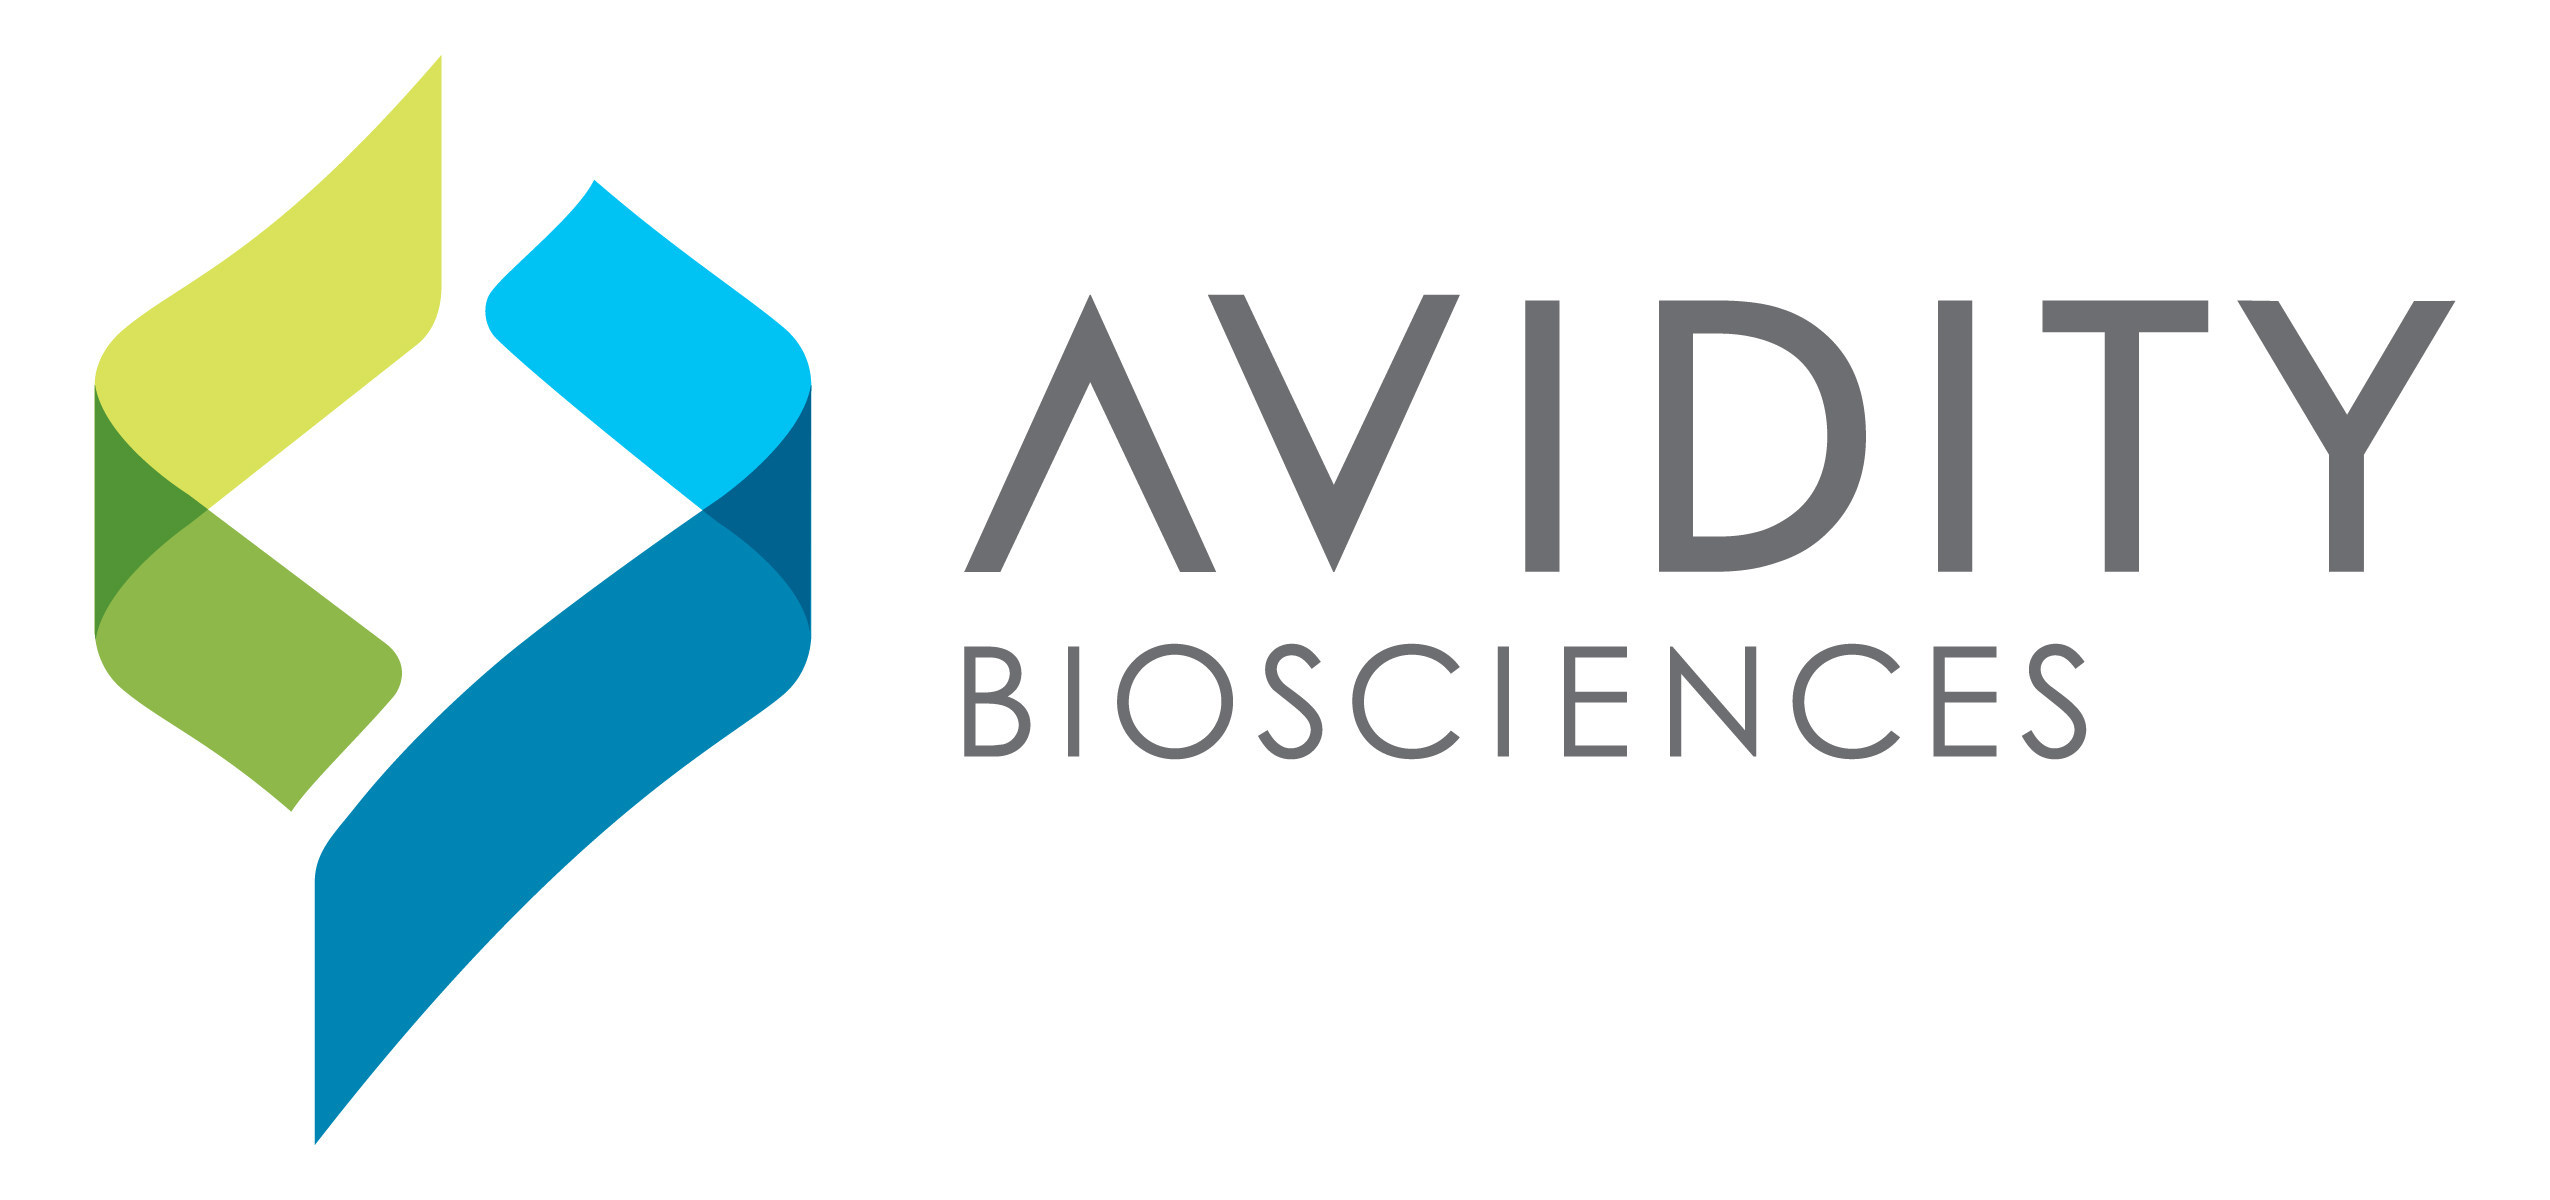 Avidity Biosciences to Present at the 39th Annual J.P. Morgan Healthcare Conference